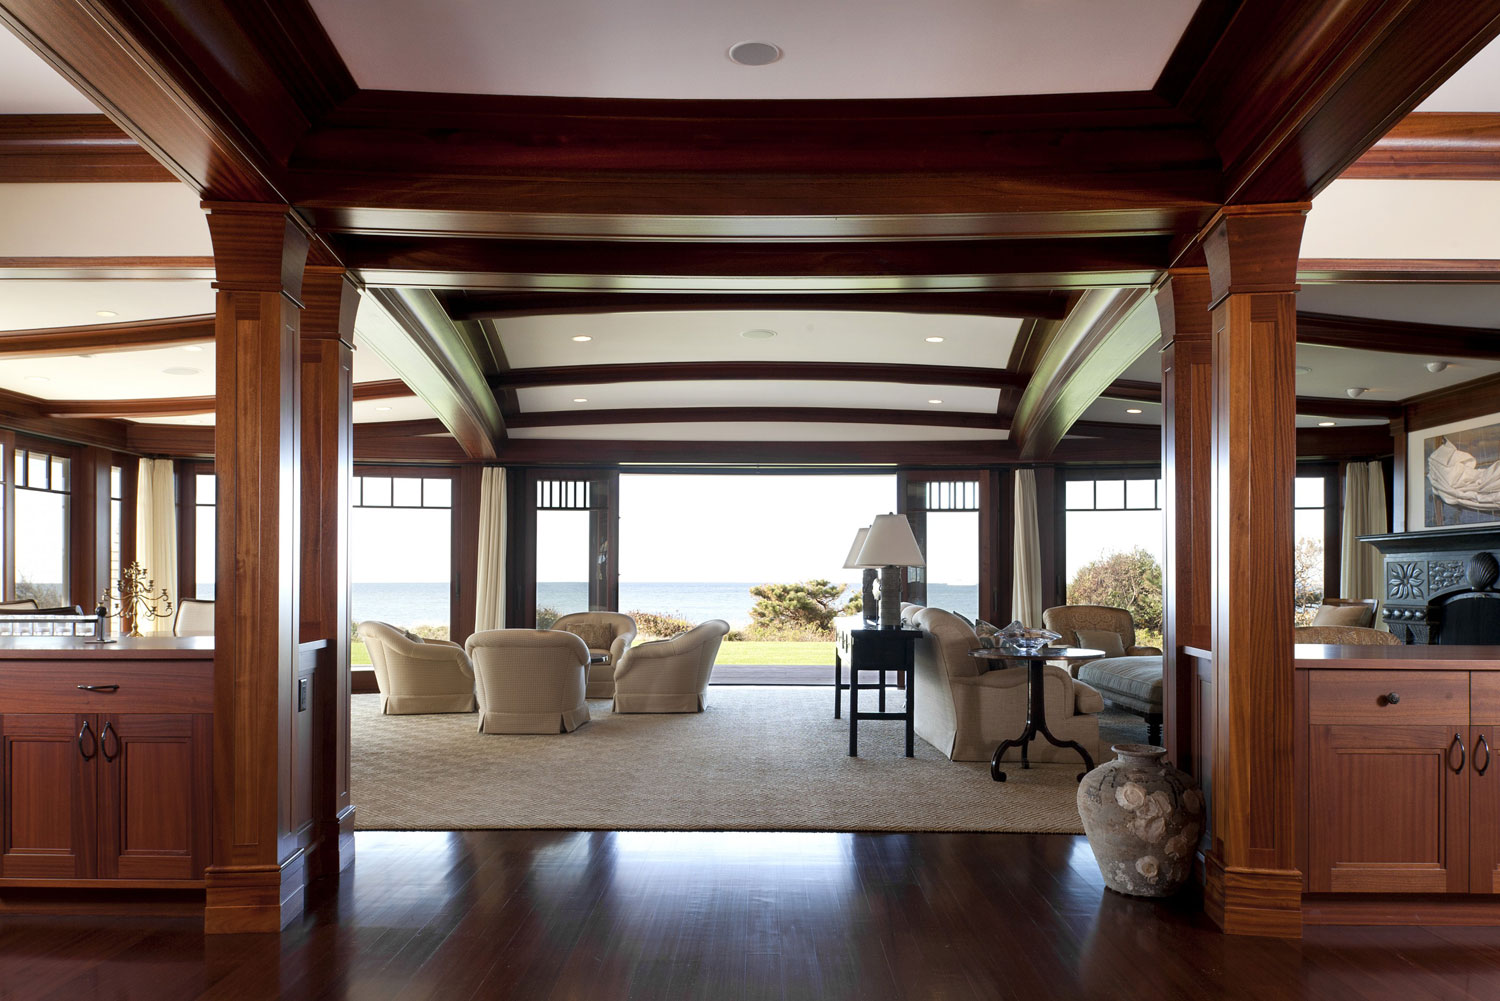 This Great Island House combines the classic Cape & Islands architecture with a more open and tropical interior. Morehouse MacDonald & Associates used figured sapele and carved soapstone mantels in concert with curved planes and elements to subtly reinfor